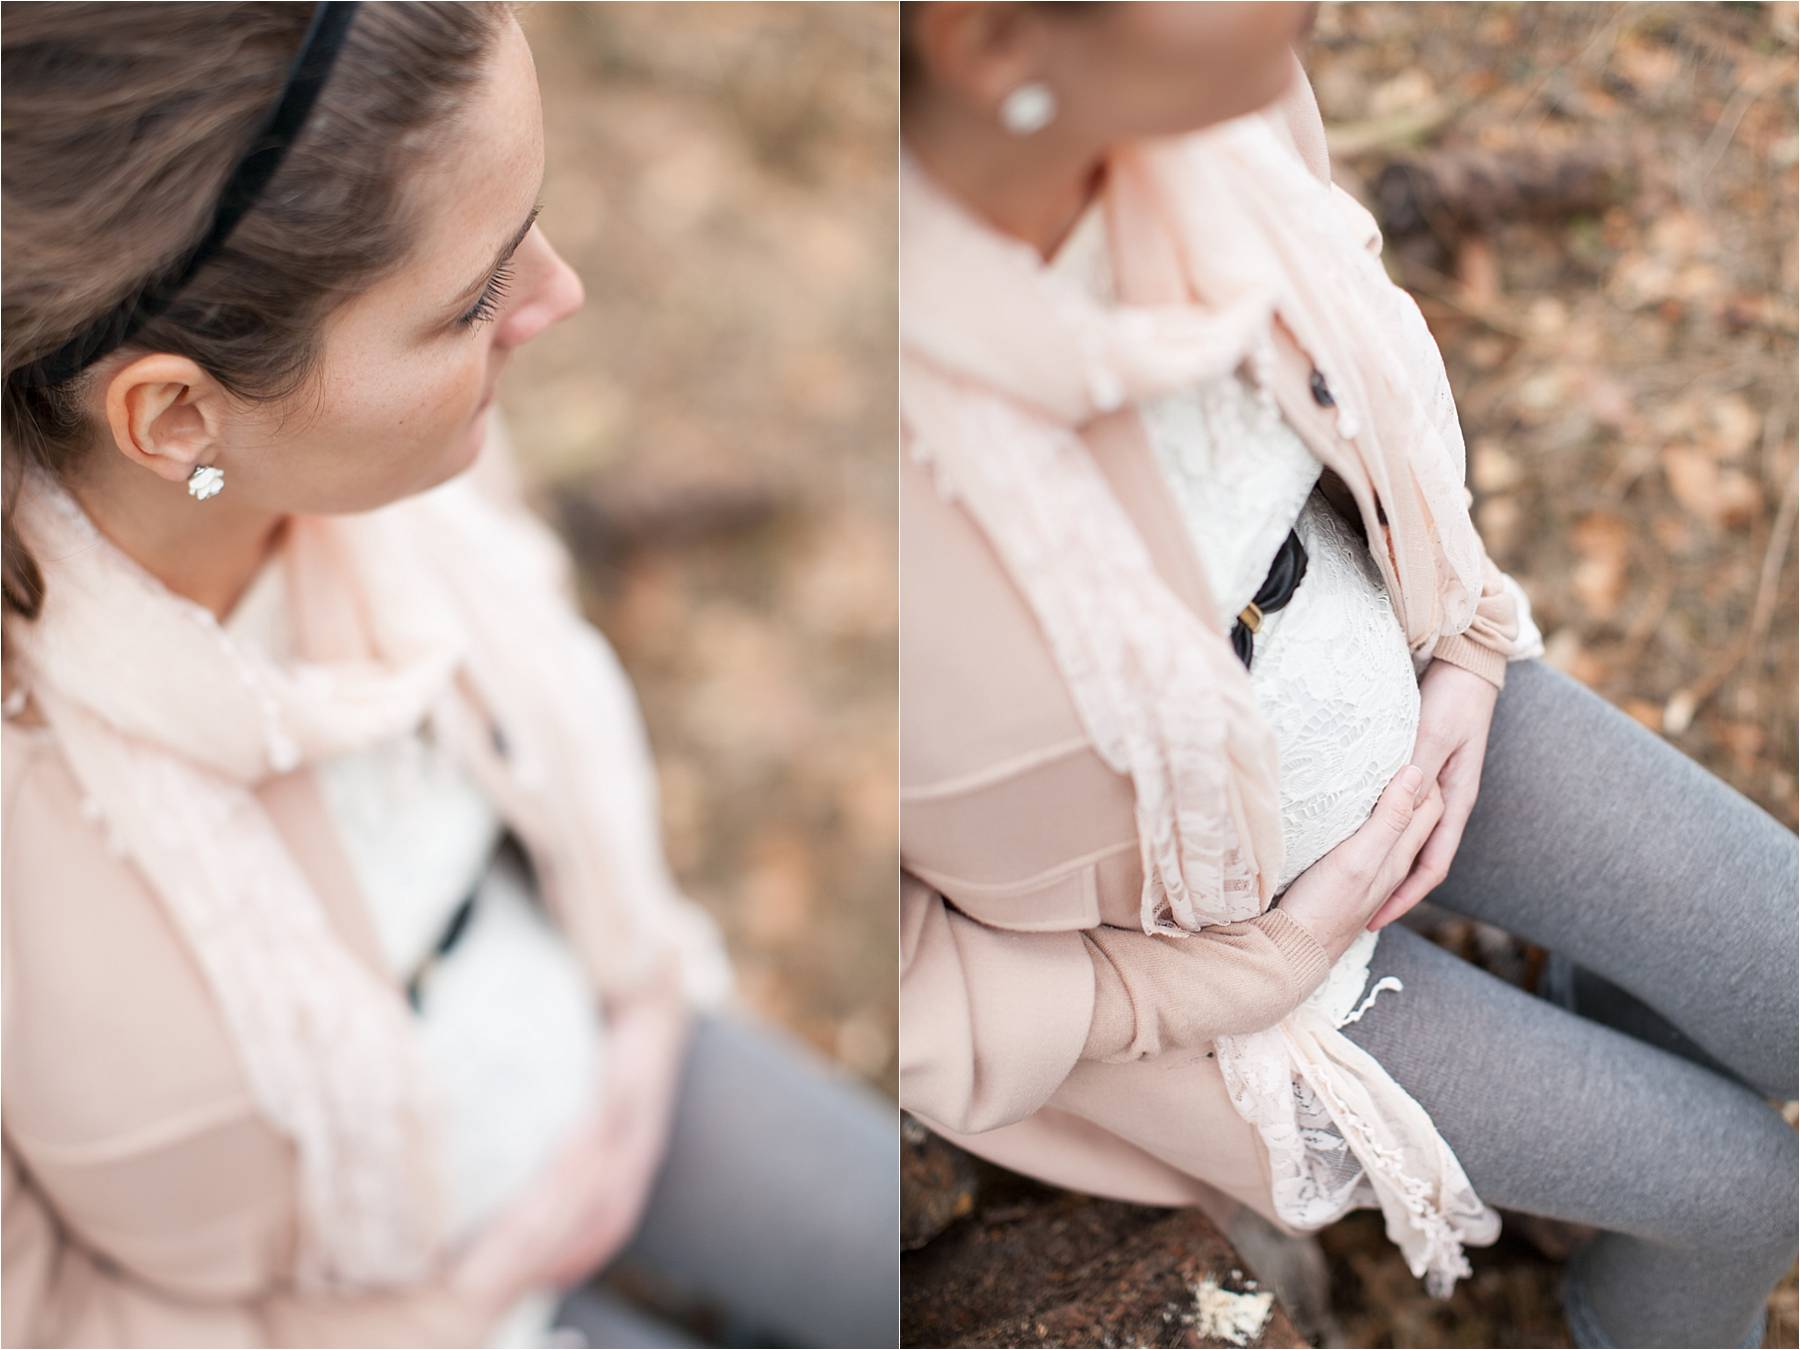 Maternity photoshoot in Sint-Niklaas